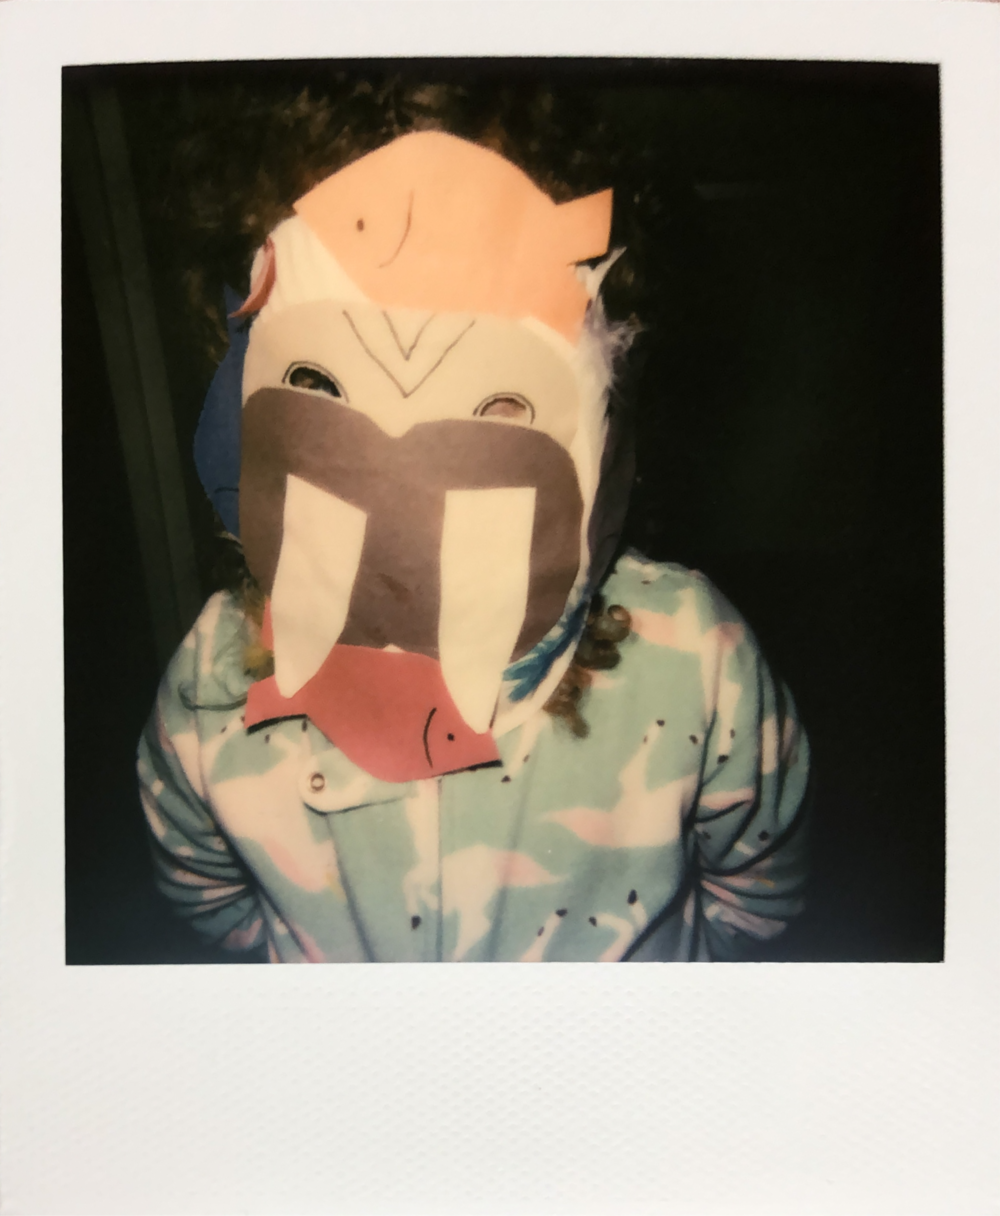 Olive's Intuit Mask, 1-22-2019